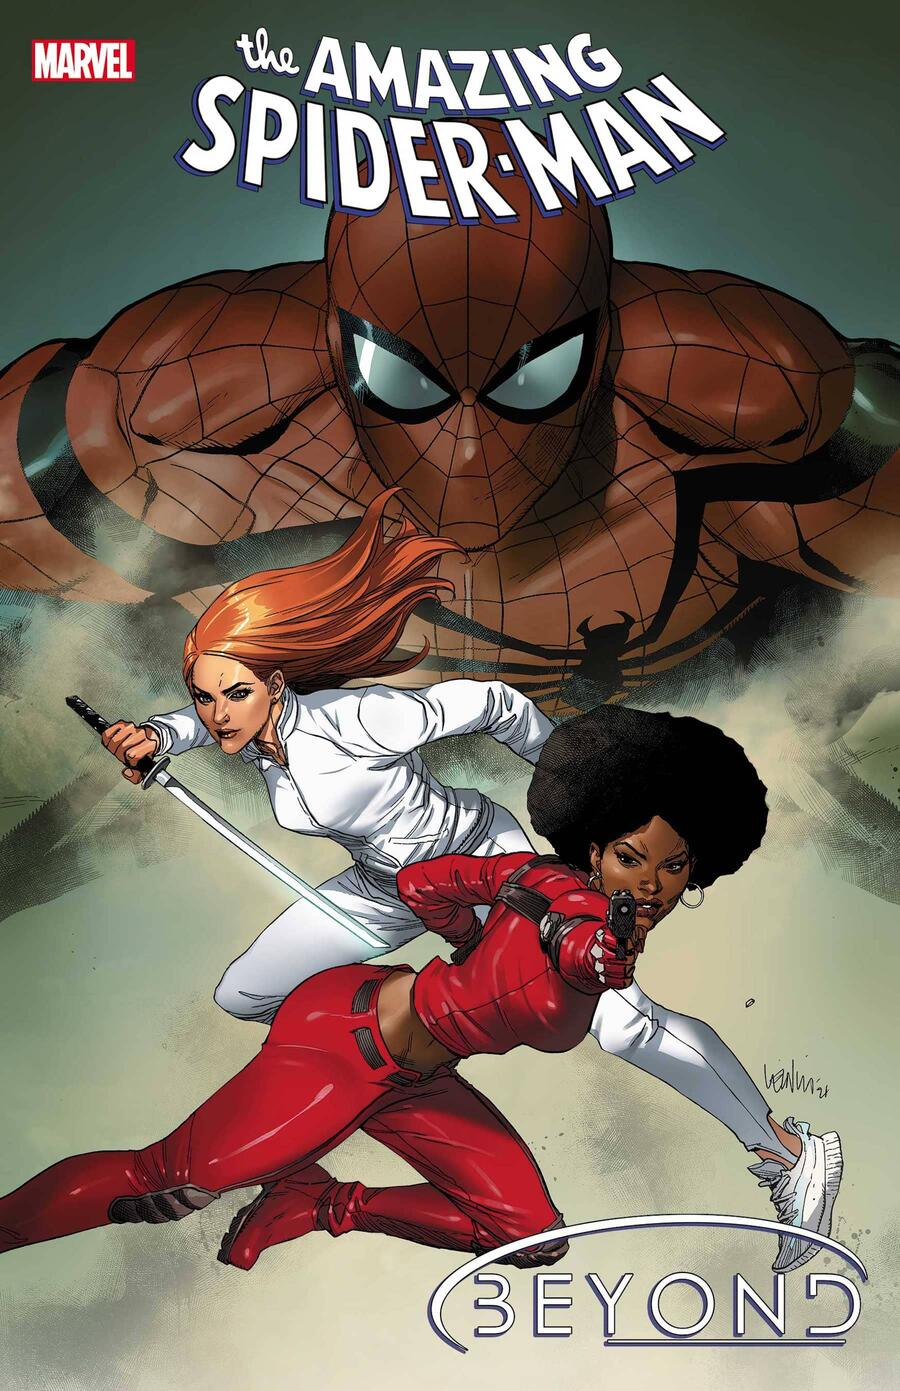 AMAZING SPIDER-MAN #78.BEY cover by Leinil Francis Yu